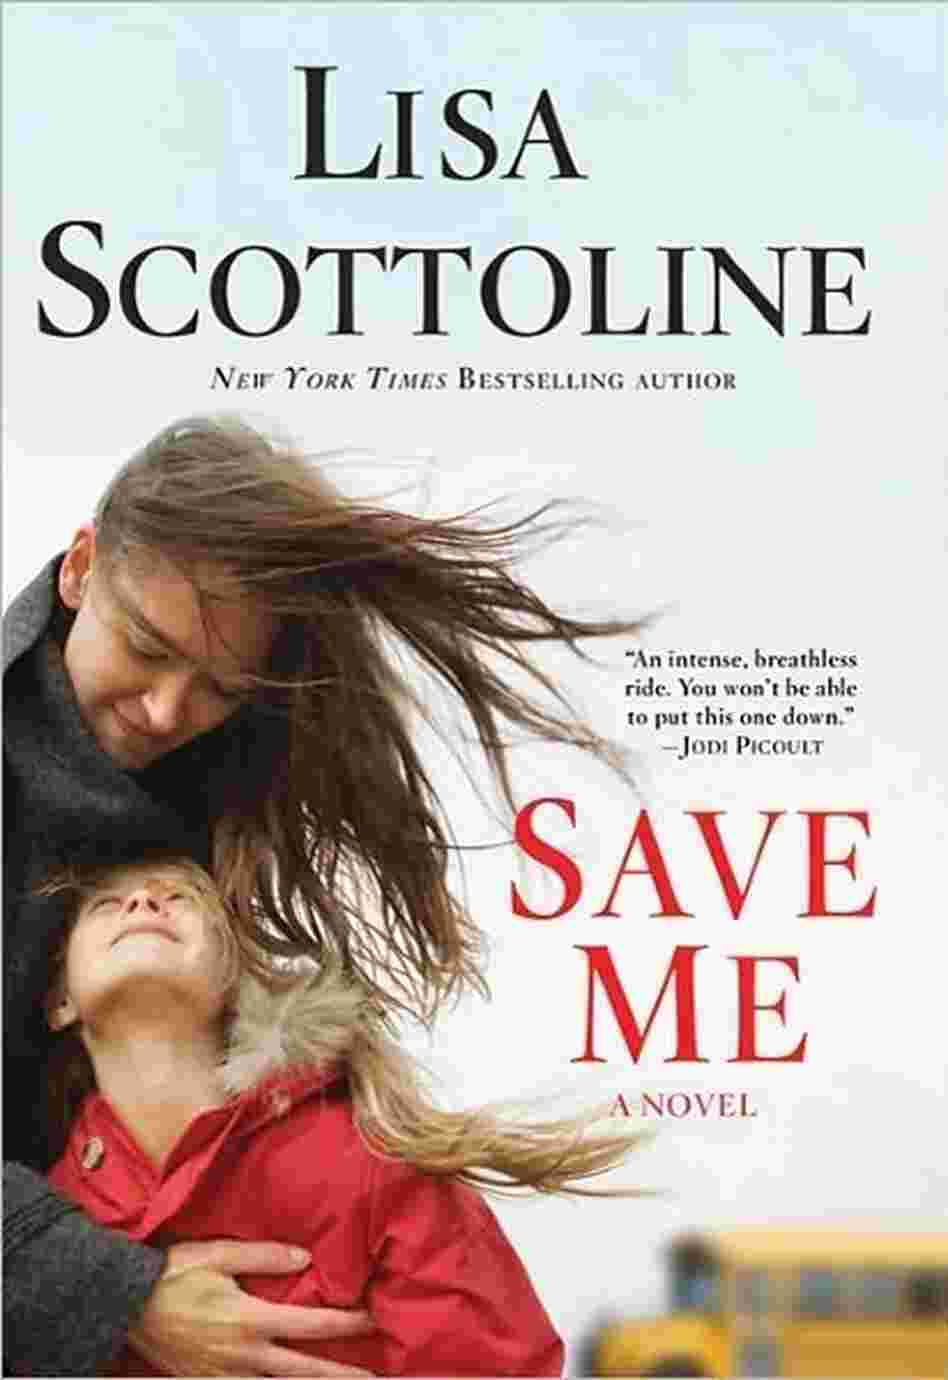 Save Me, by Lisa Scottoline